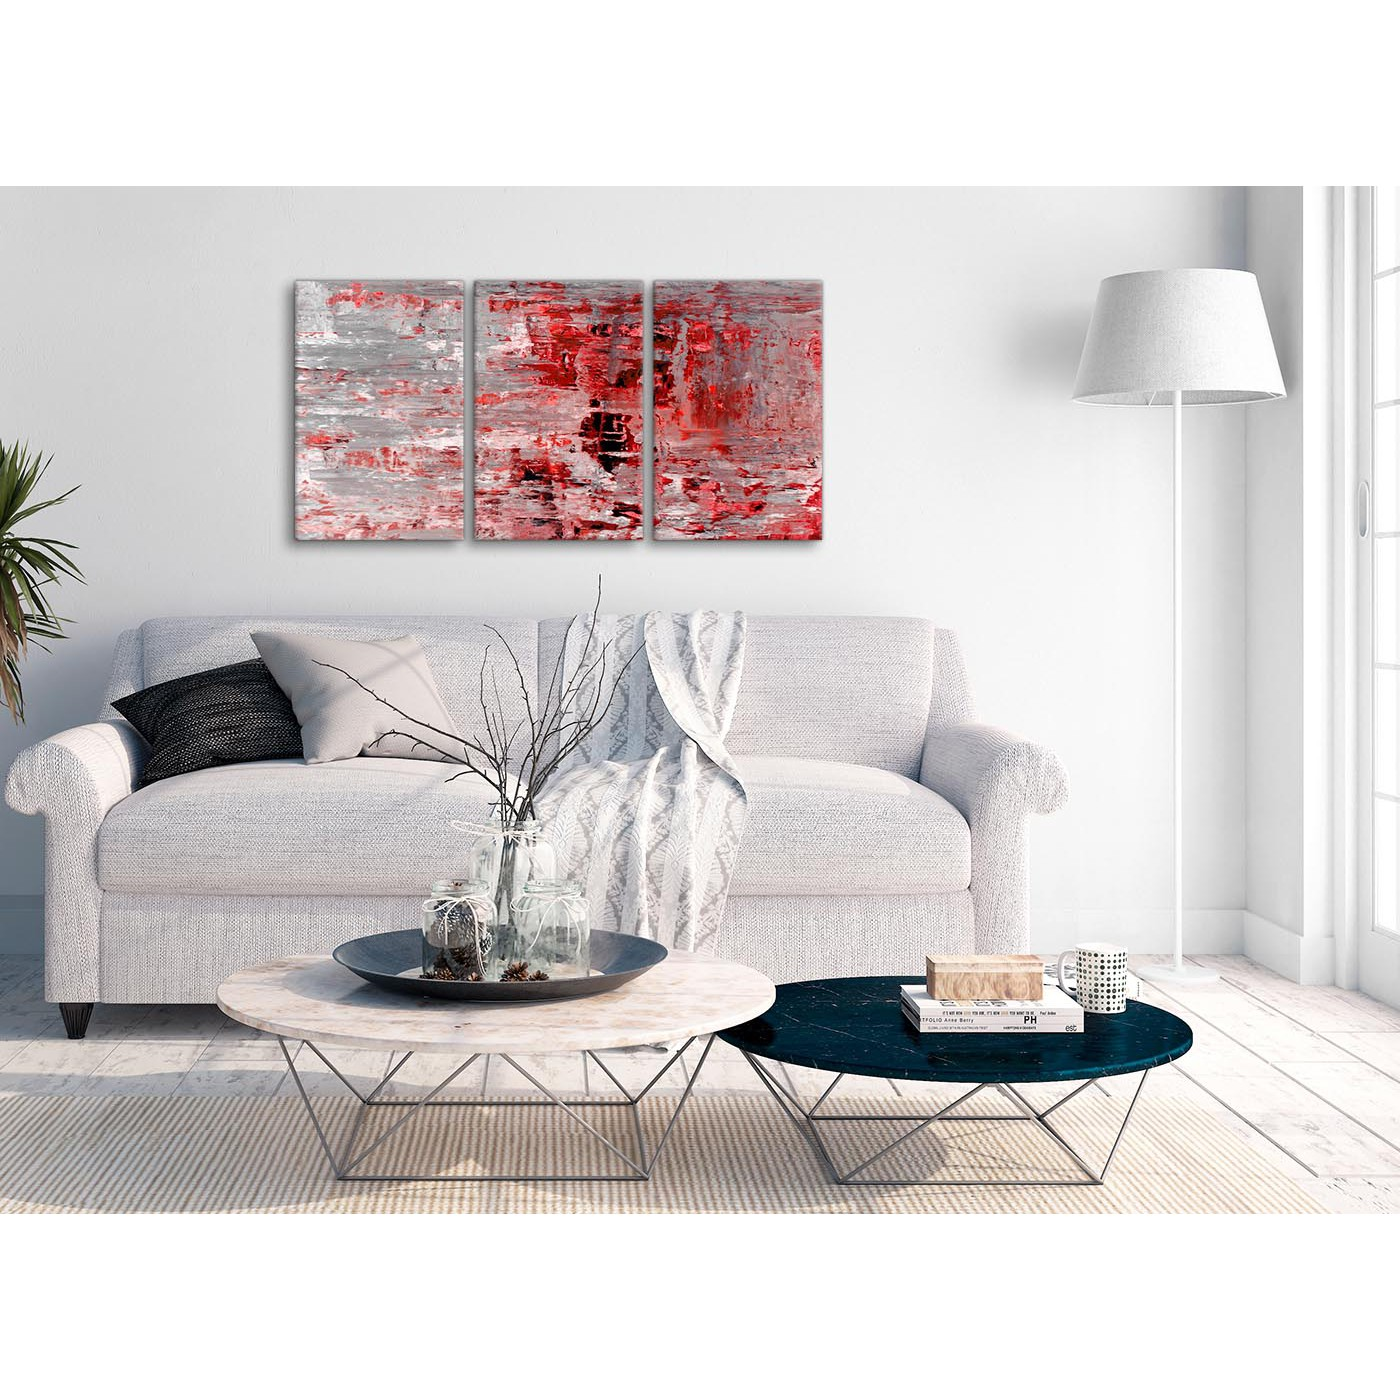 3 Piece Red Grey Painting Living Room Canvas Wall Art Decor ...